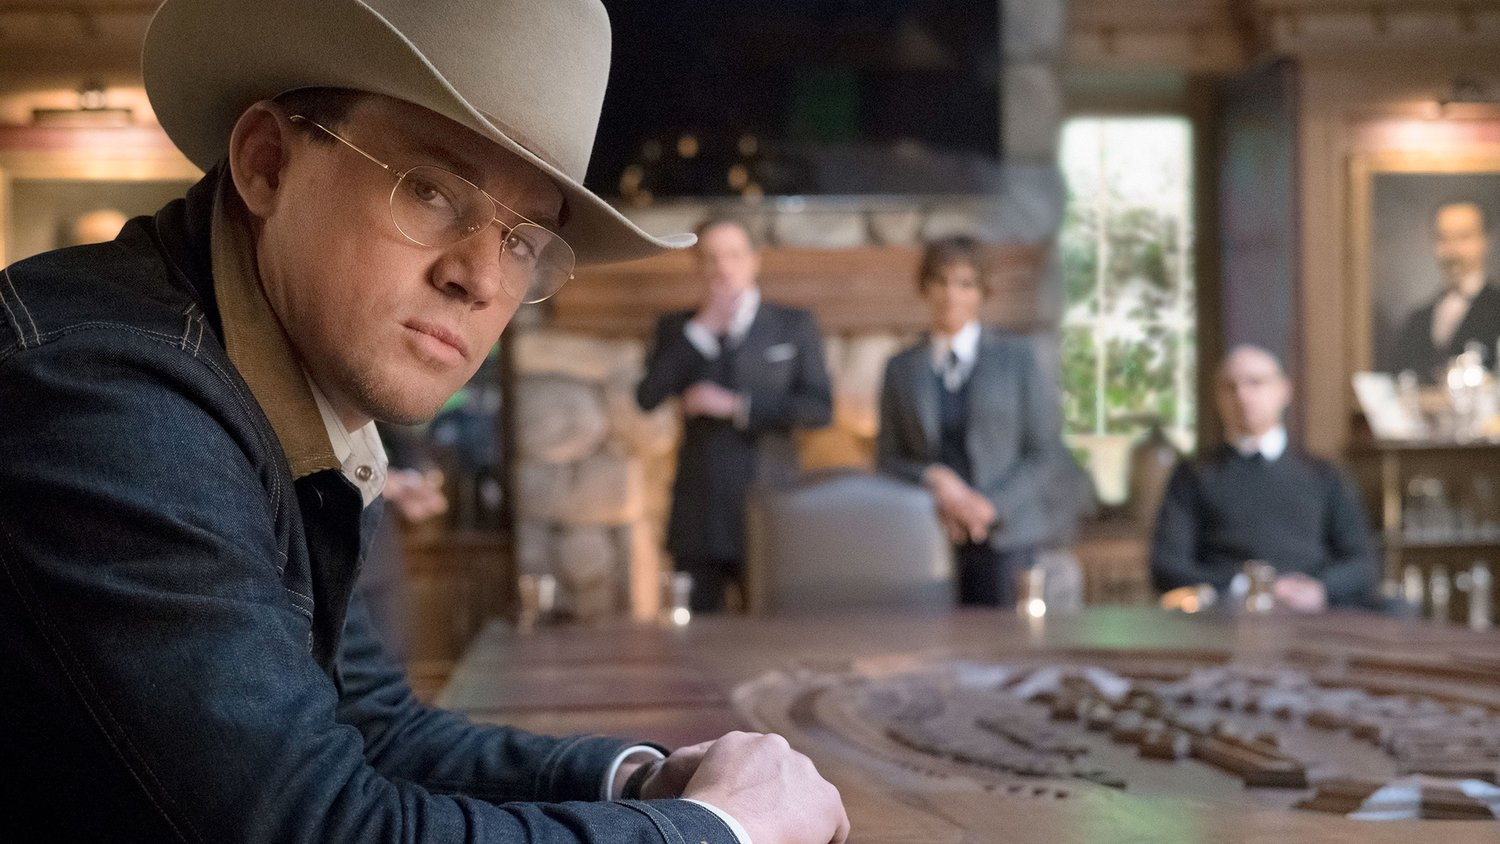 New KINGSMAN: THE GOLDEN CIRCLE Photos Give Us a First Look at Channing Tatum, Jeff Bridges and Halle Berry